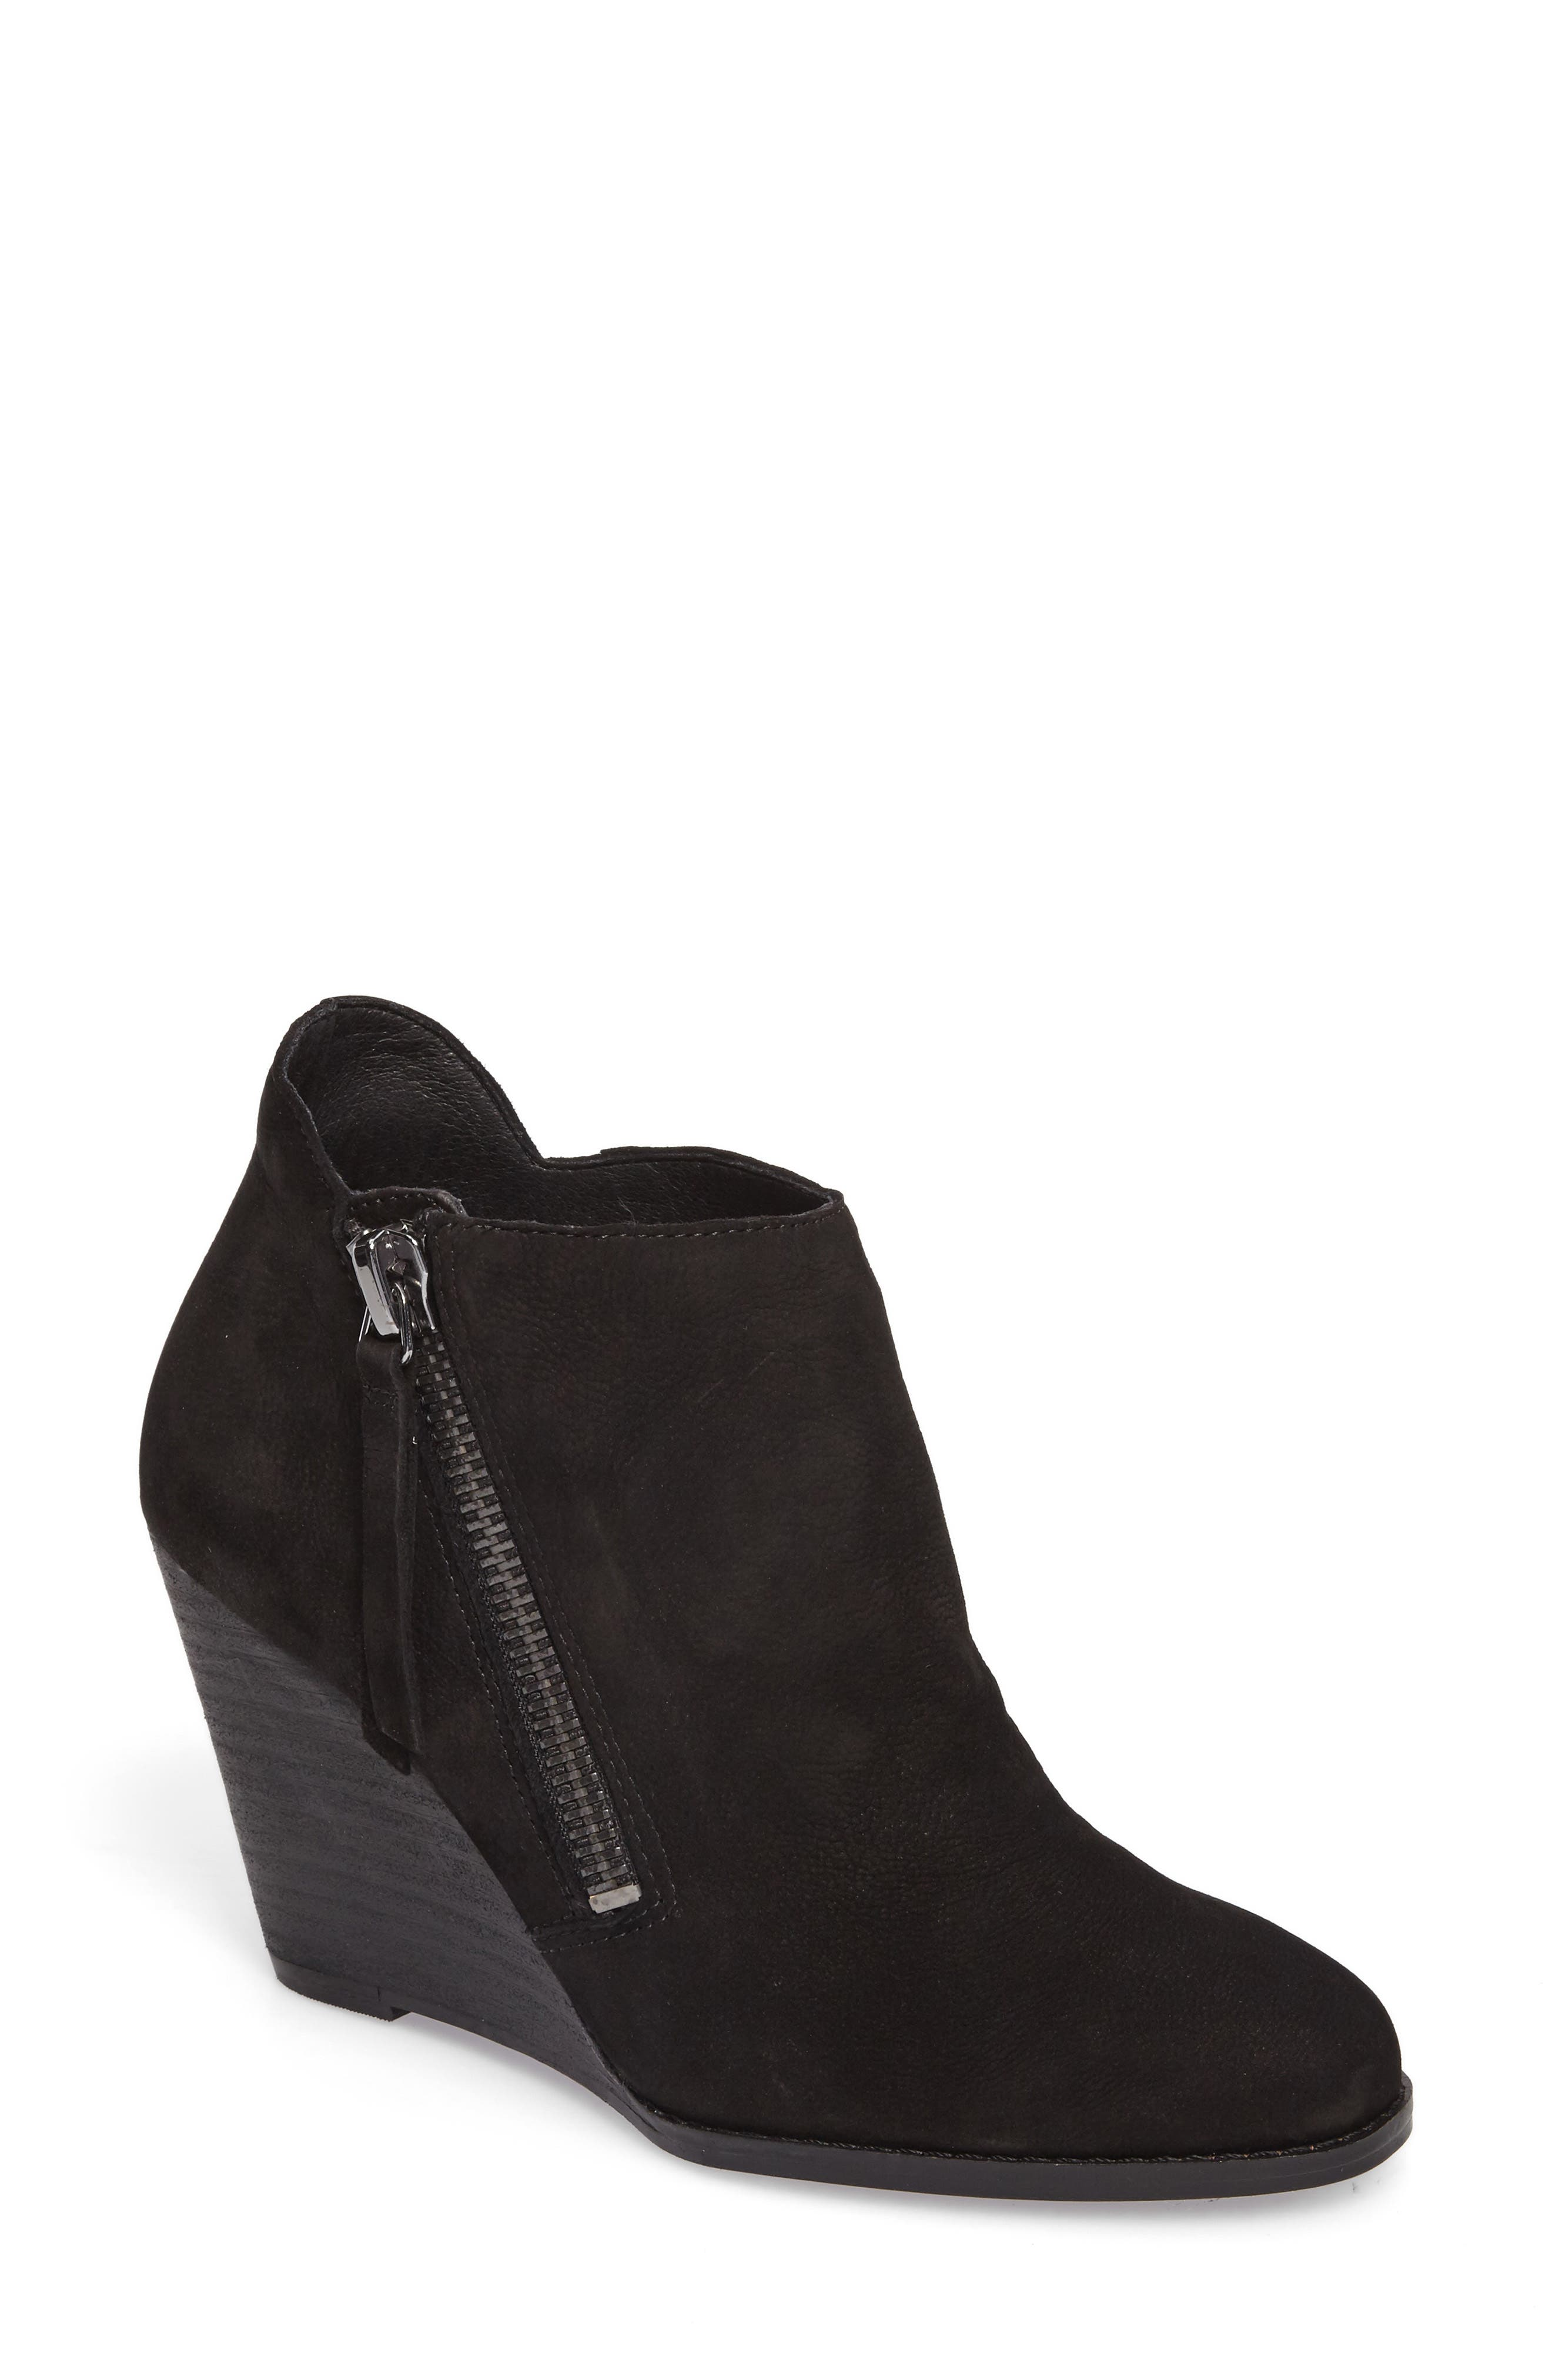 Carnivela Wedge Bootie,                         Main,                         color, 001